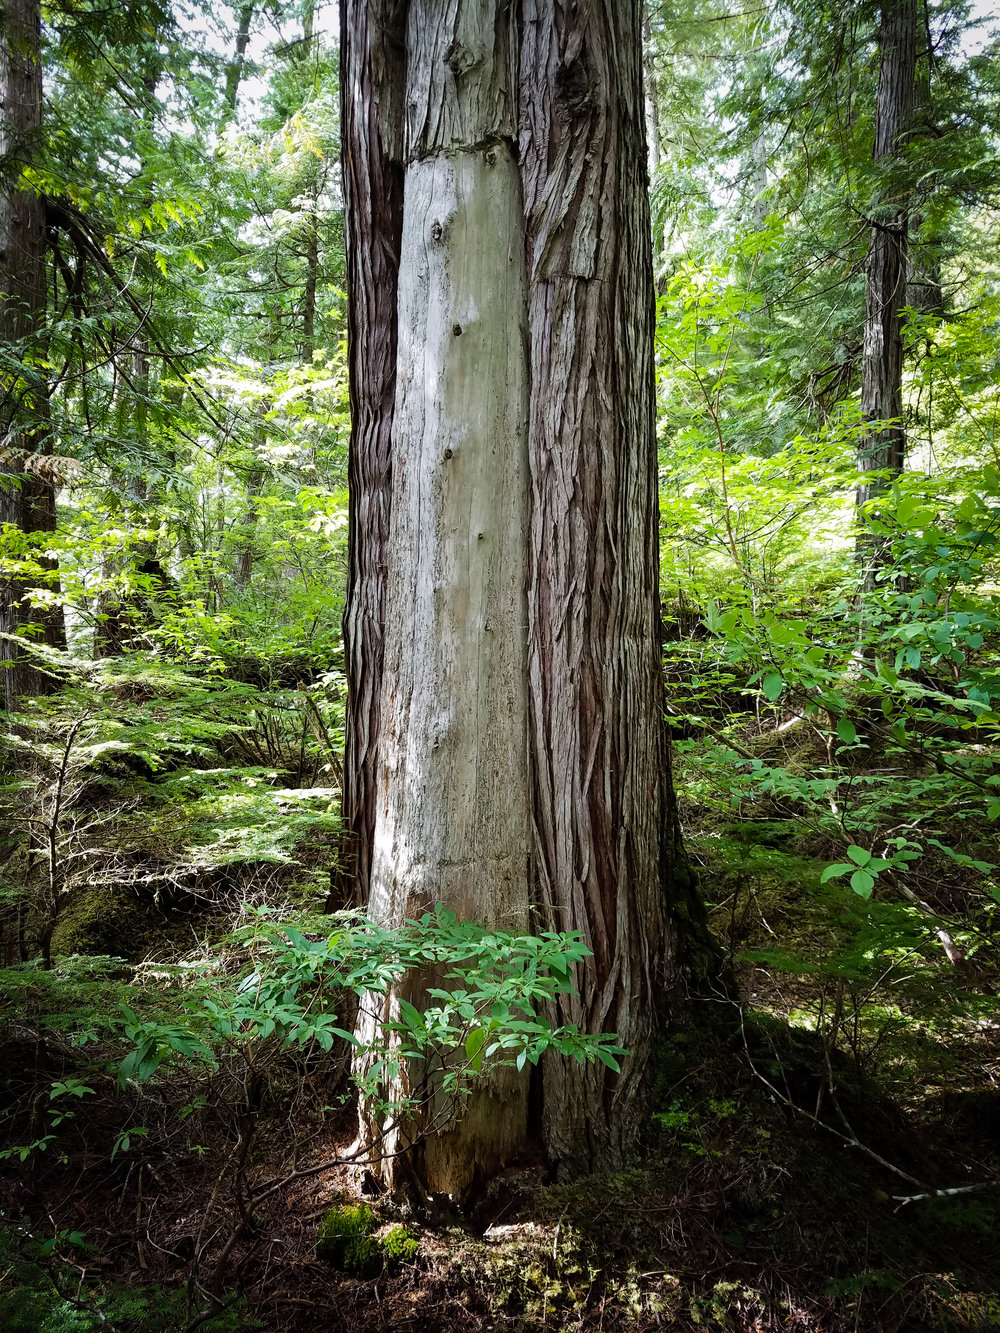 Living cedar tree, once stripped for bark.